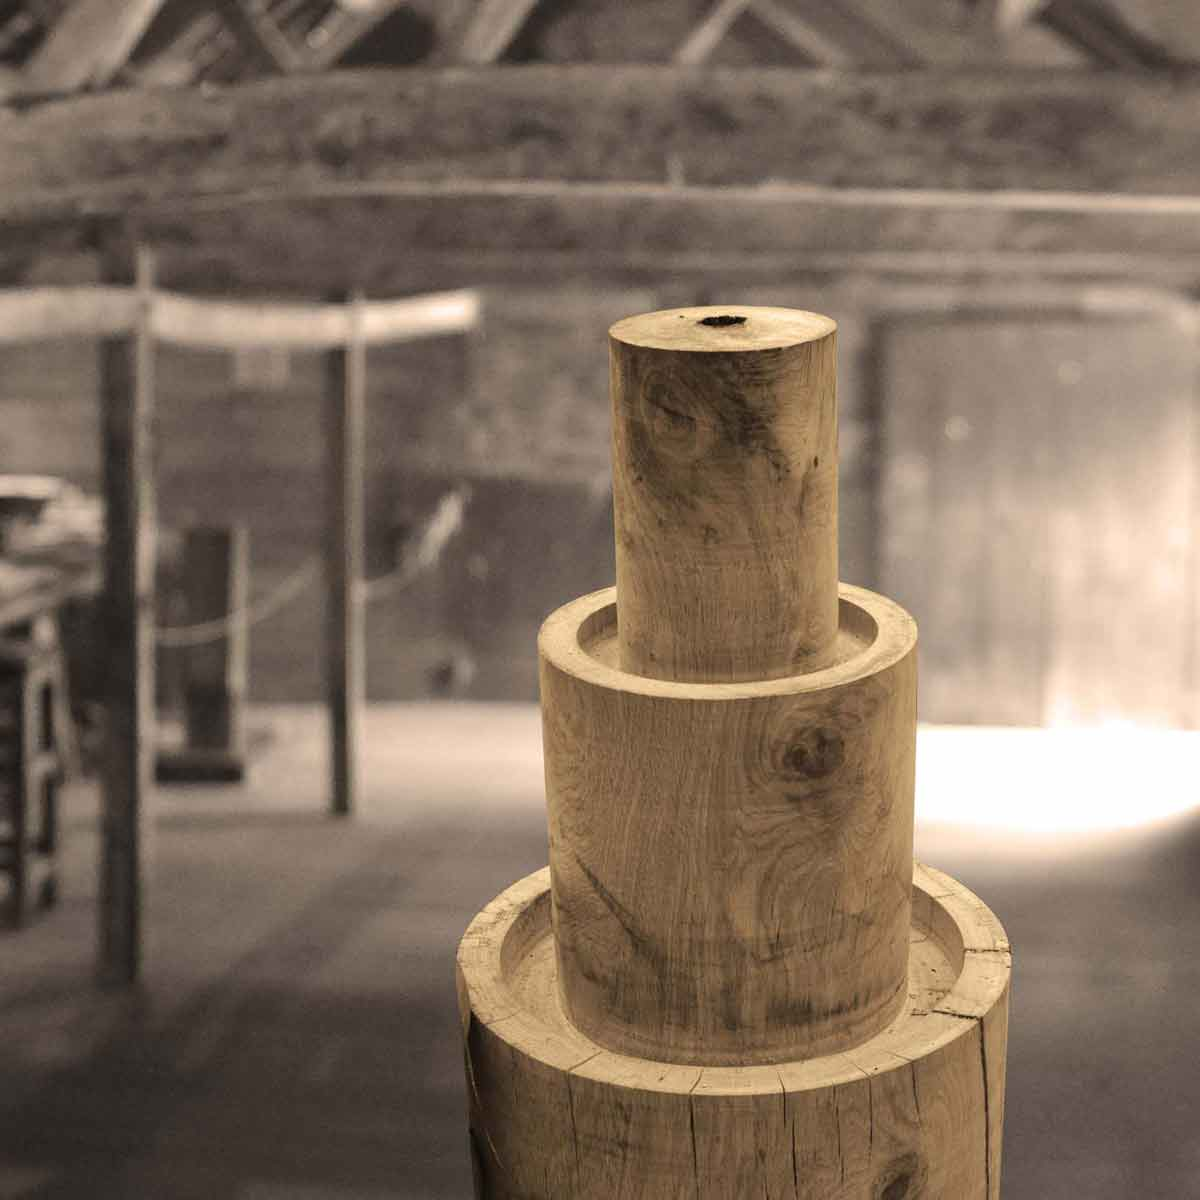 Exhibition at St Fagans Museum | 2014